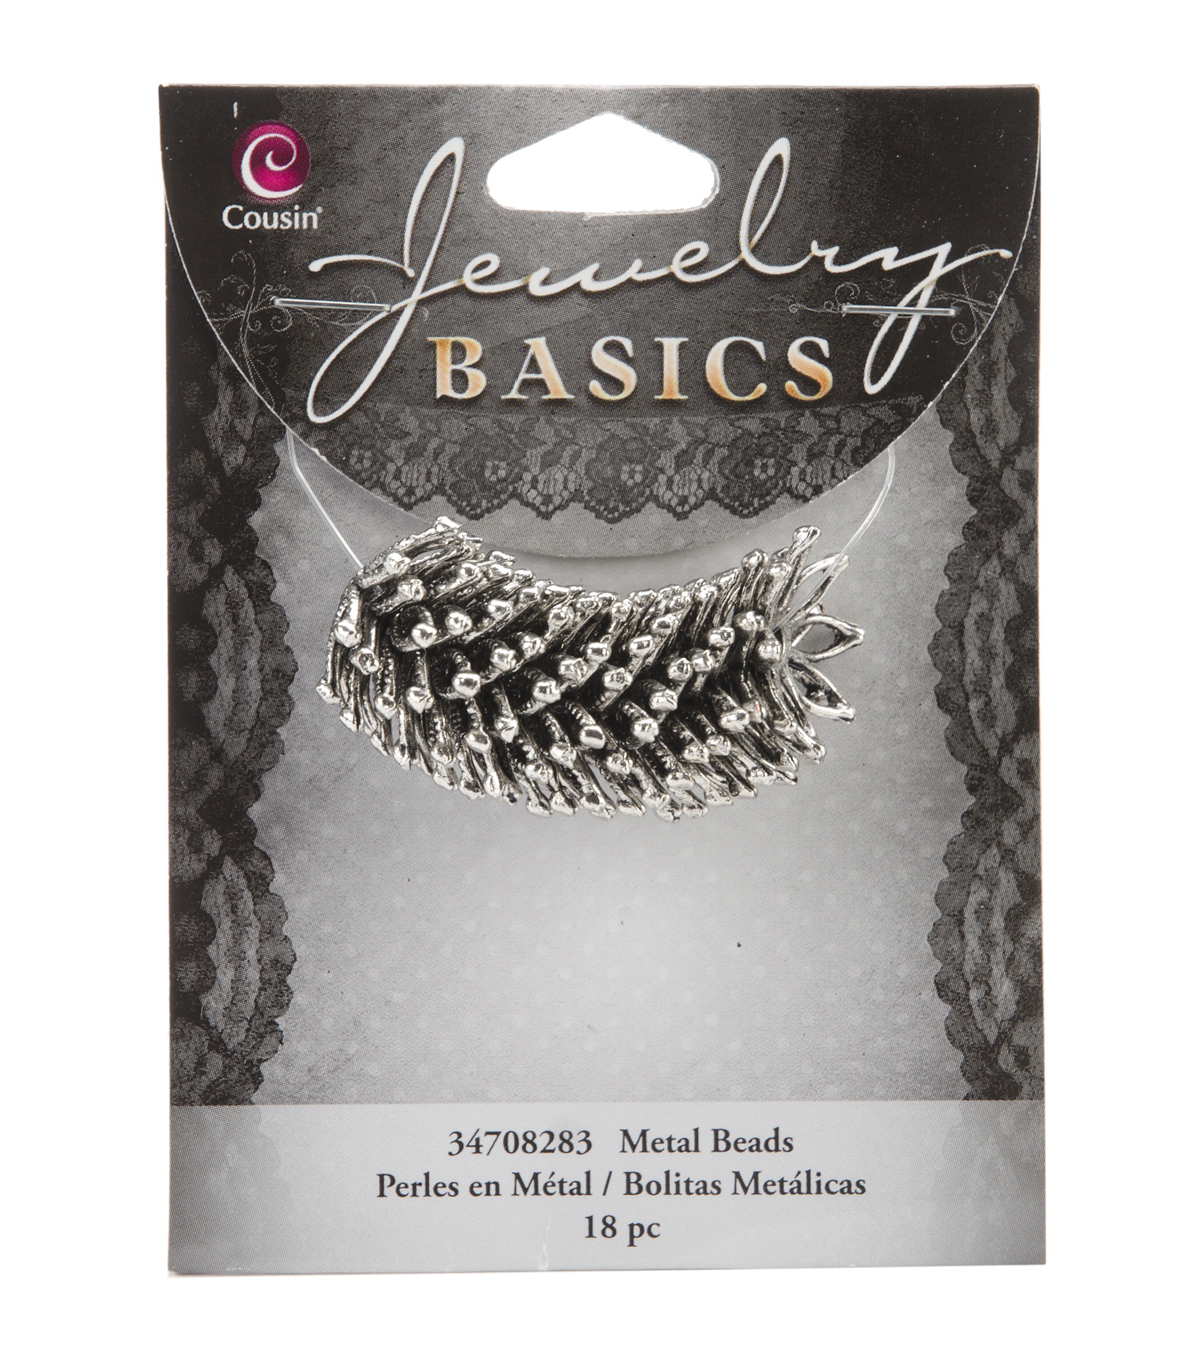 Jewelry Basics Metal Beads 18/Pkg-Silver Large Star Cap